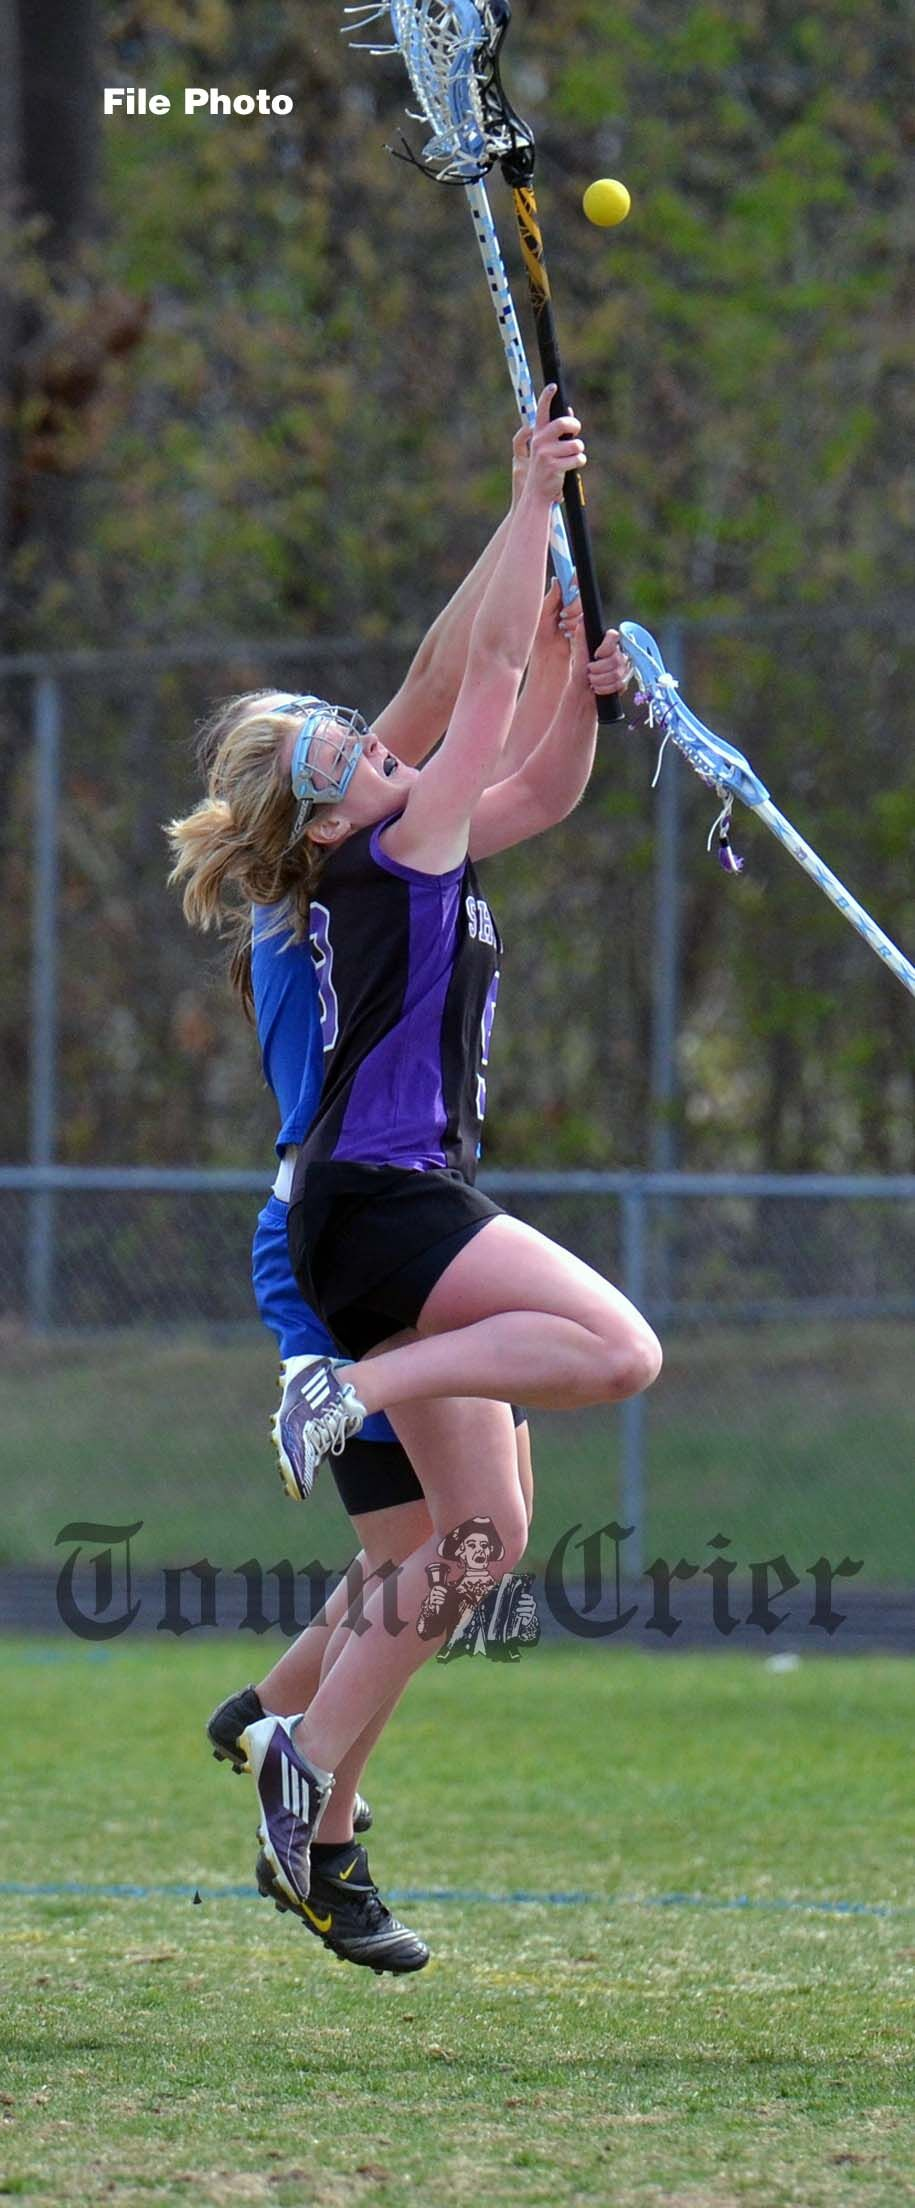 Kelsey Farraher of the All-Decade Girls Lacrosse team